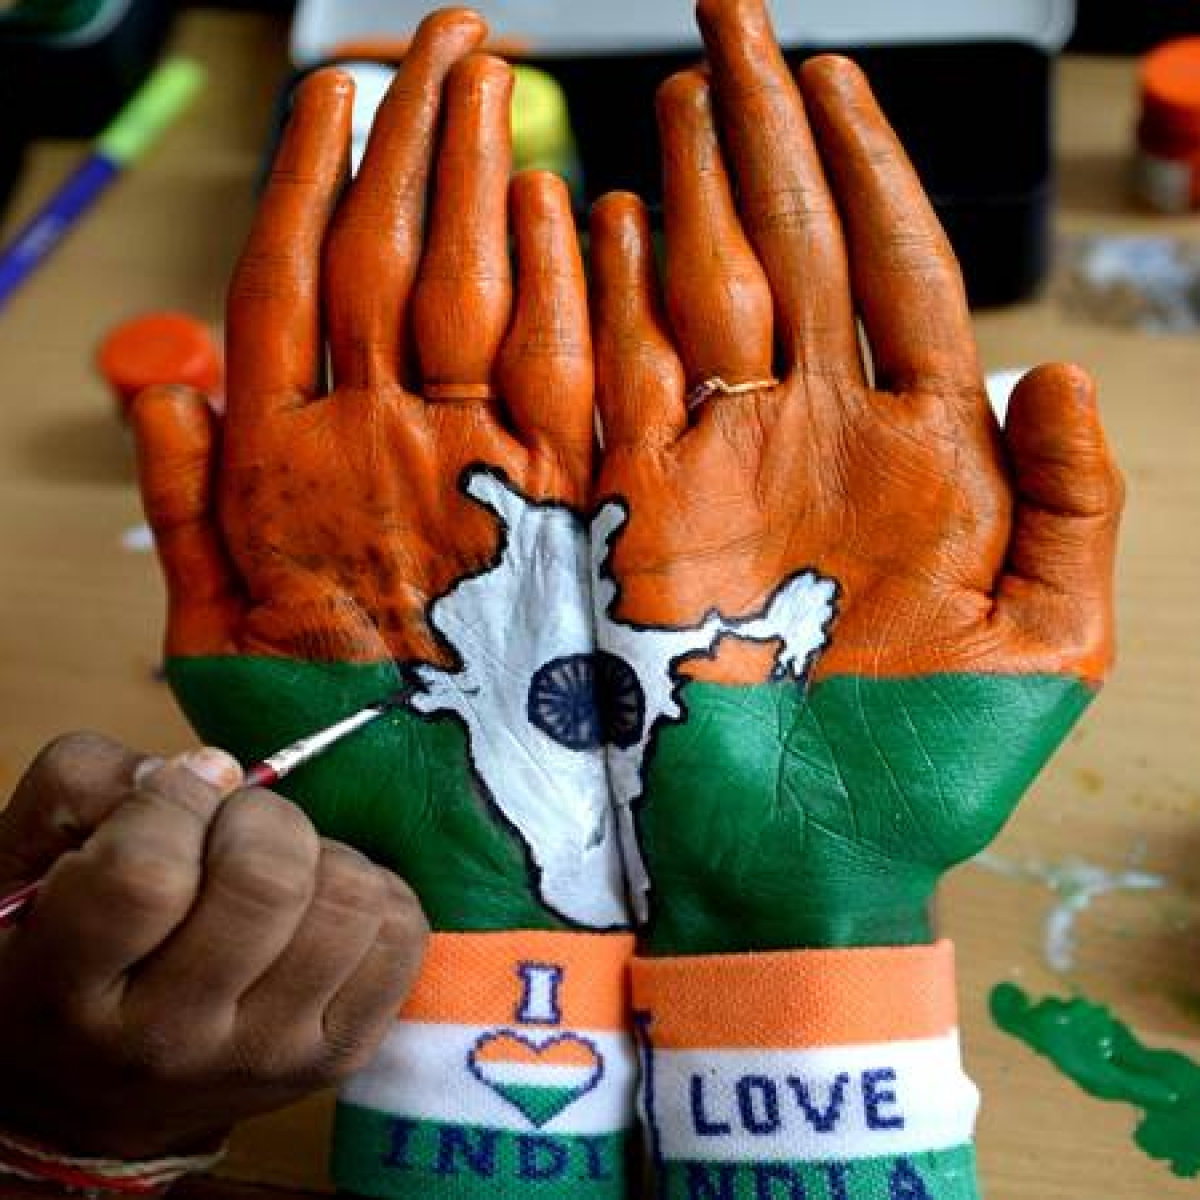 Independence Day 2020: Why is the national anthem so important?